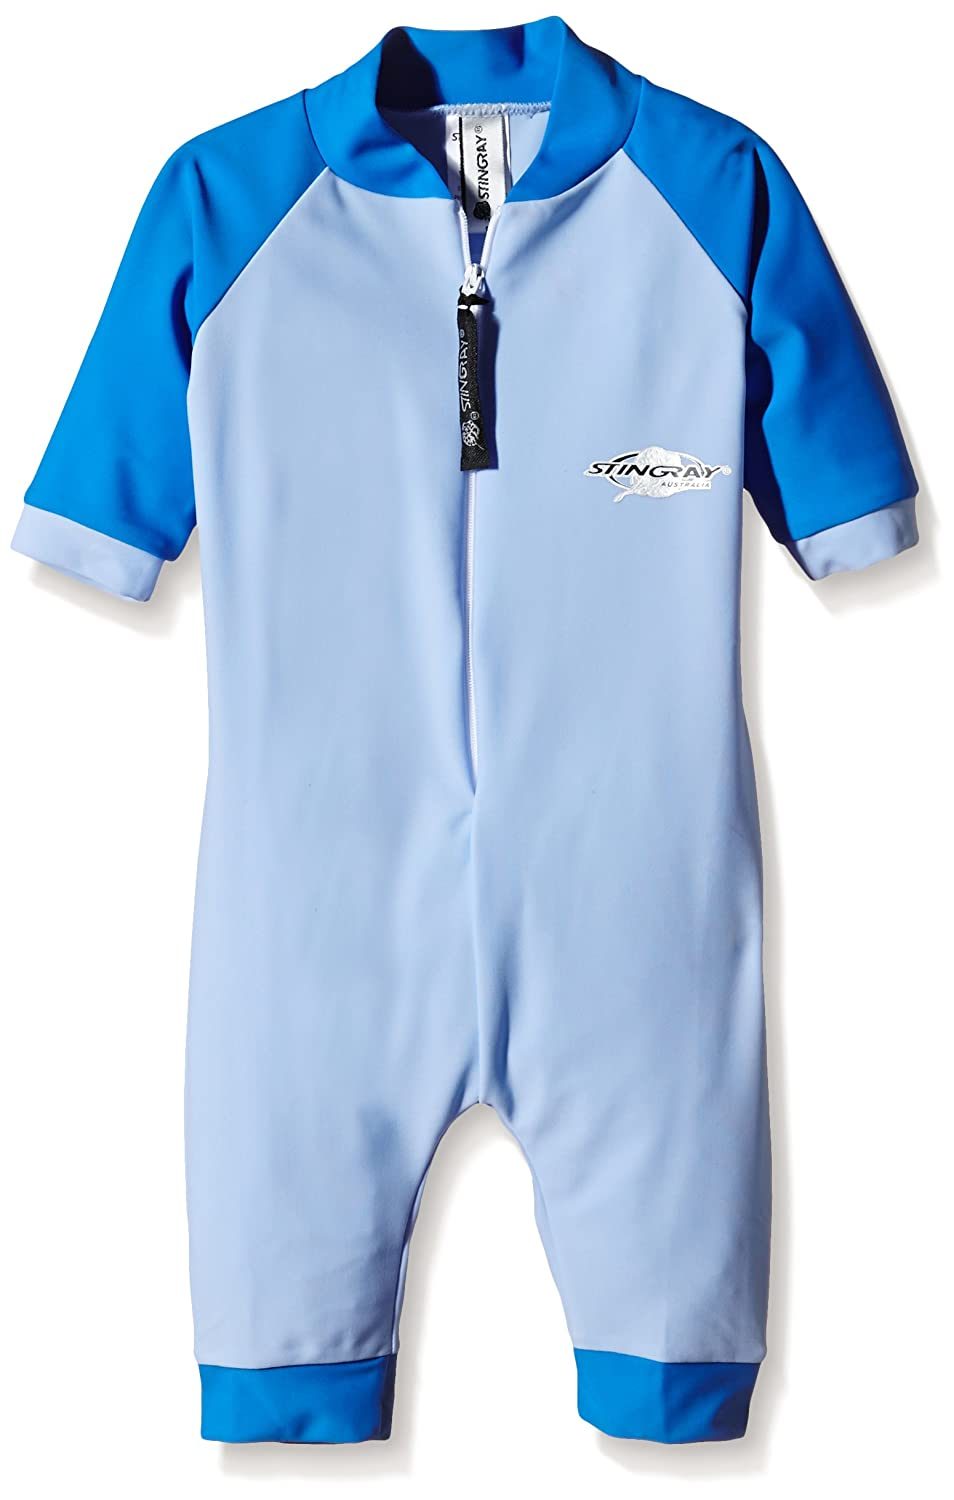 Stingray Australia Baby UV Sun Protection Romper Bathing Suit-Blue size 0 ST2000-LB